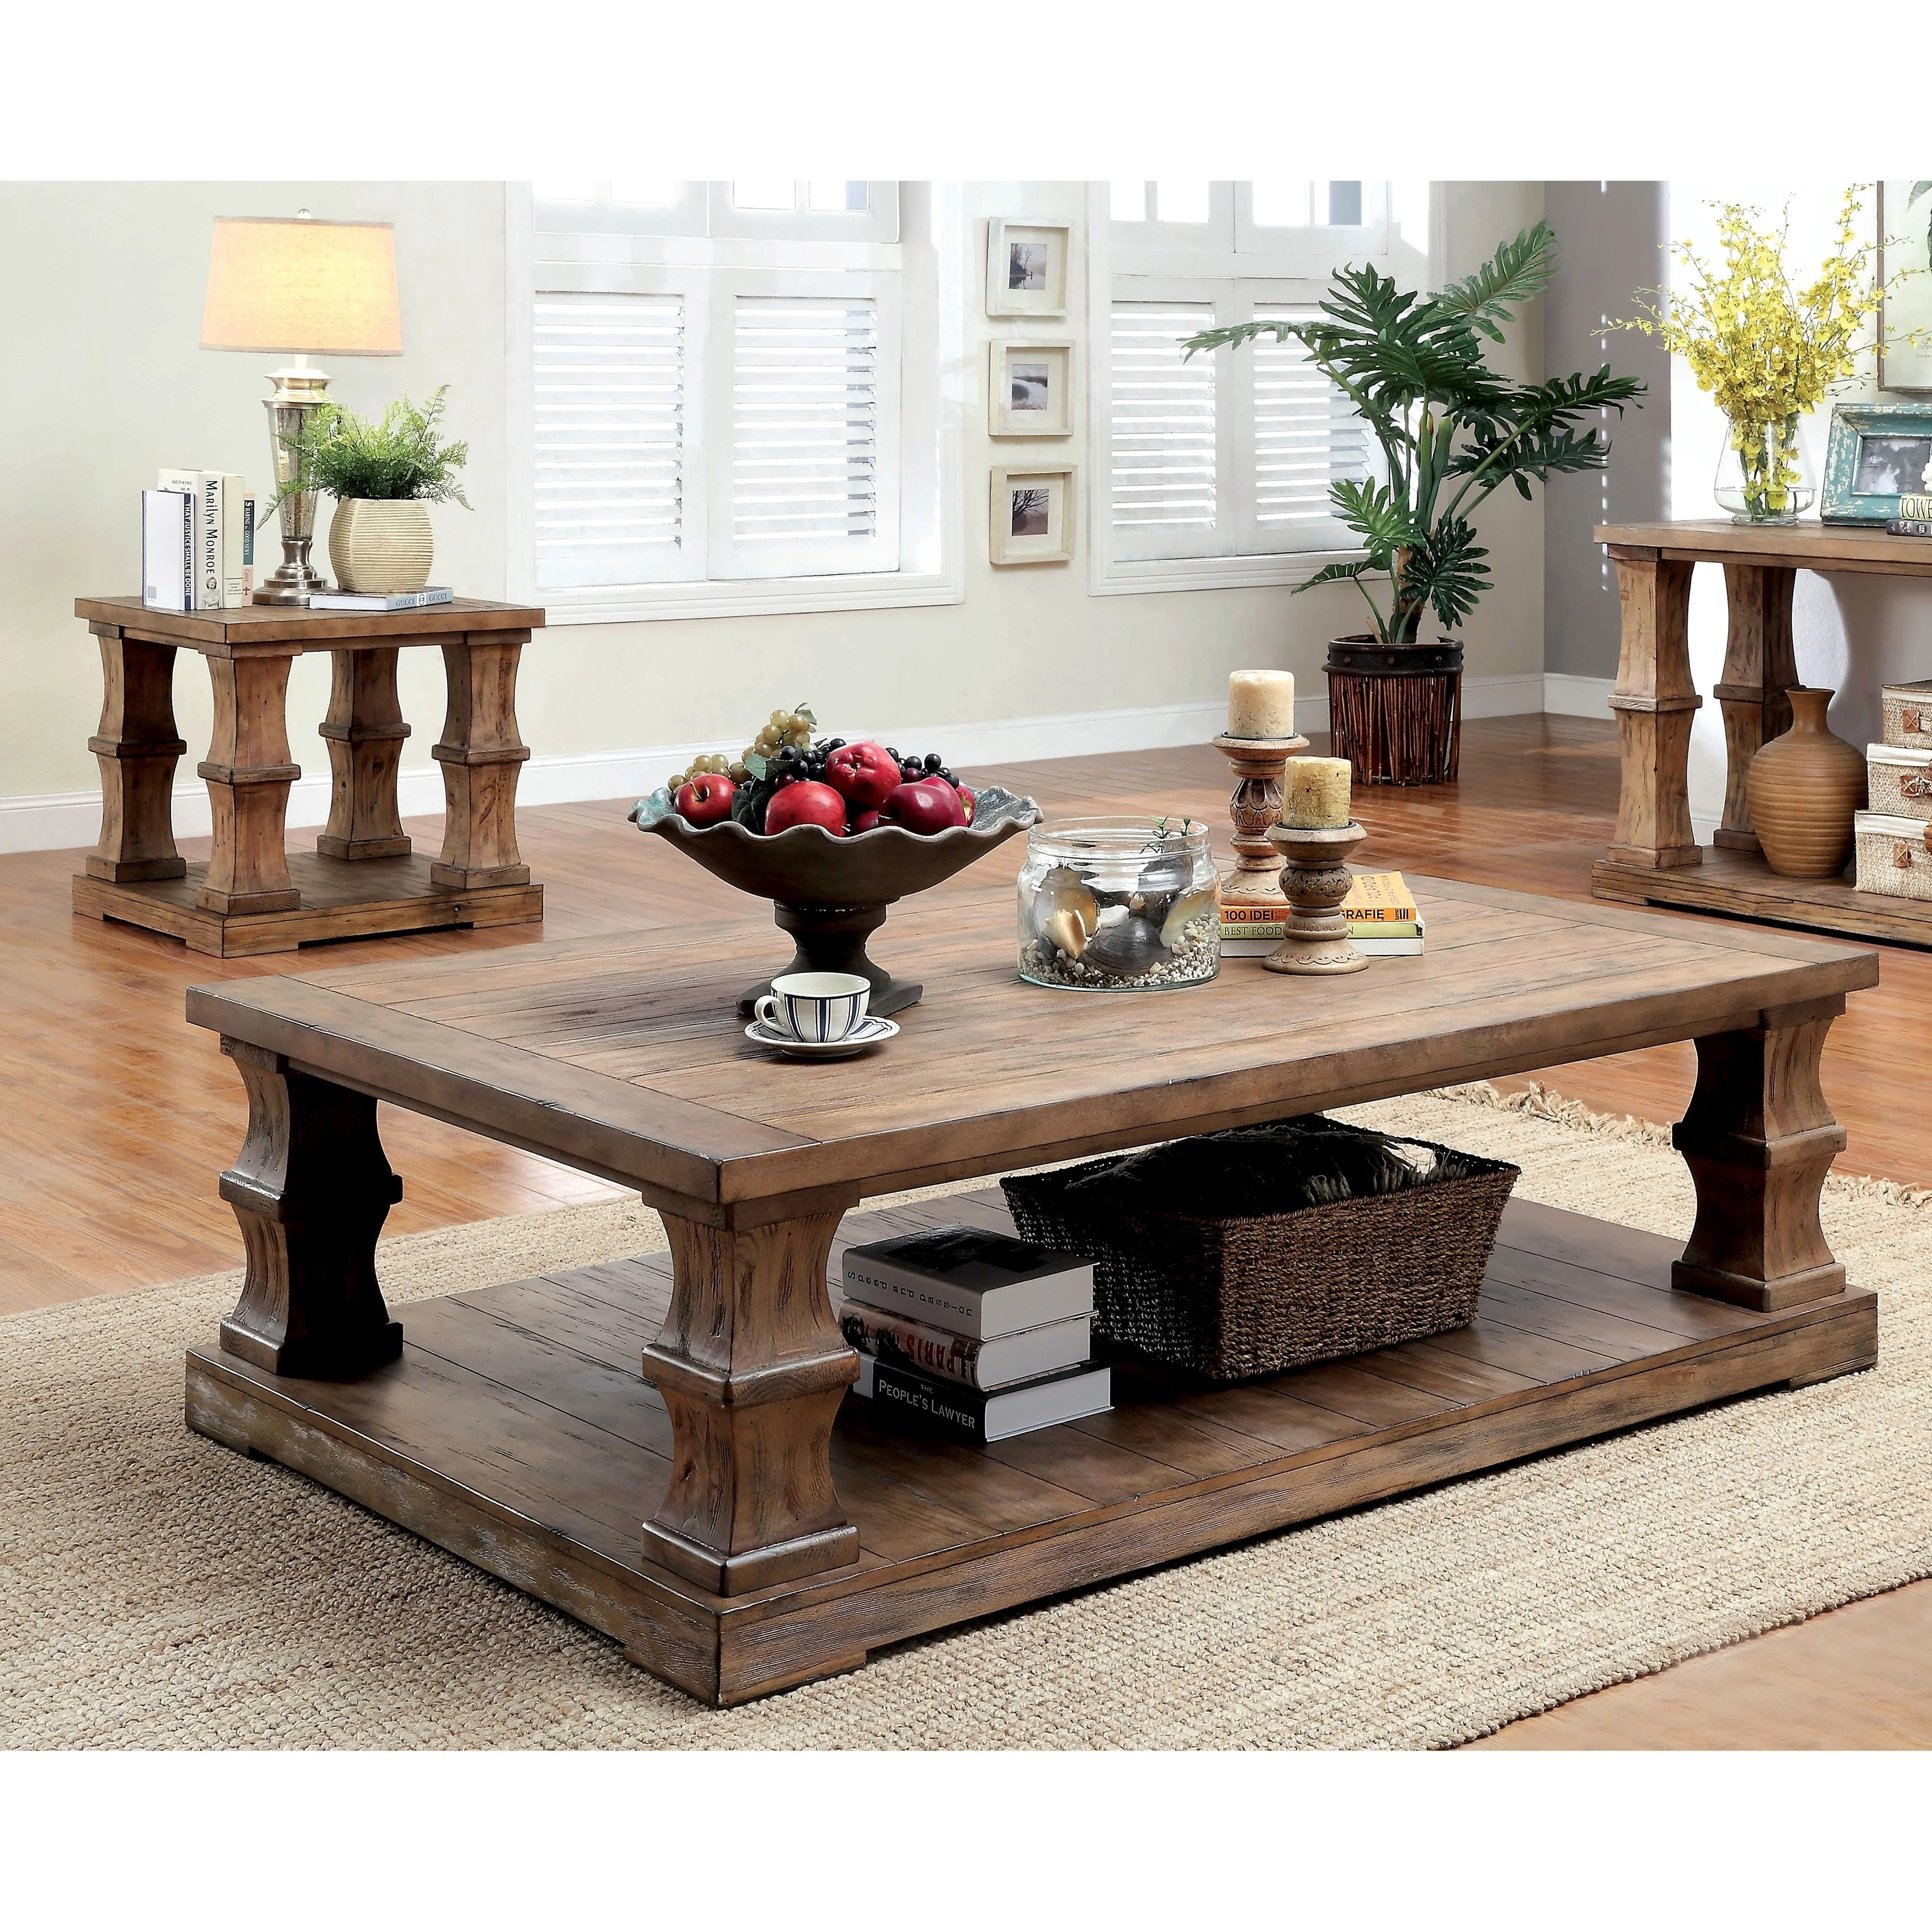 Furniture Of America Lass Rustic Brown 2 Piece Accent Table Set